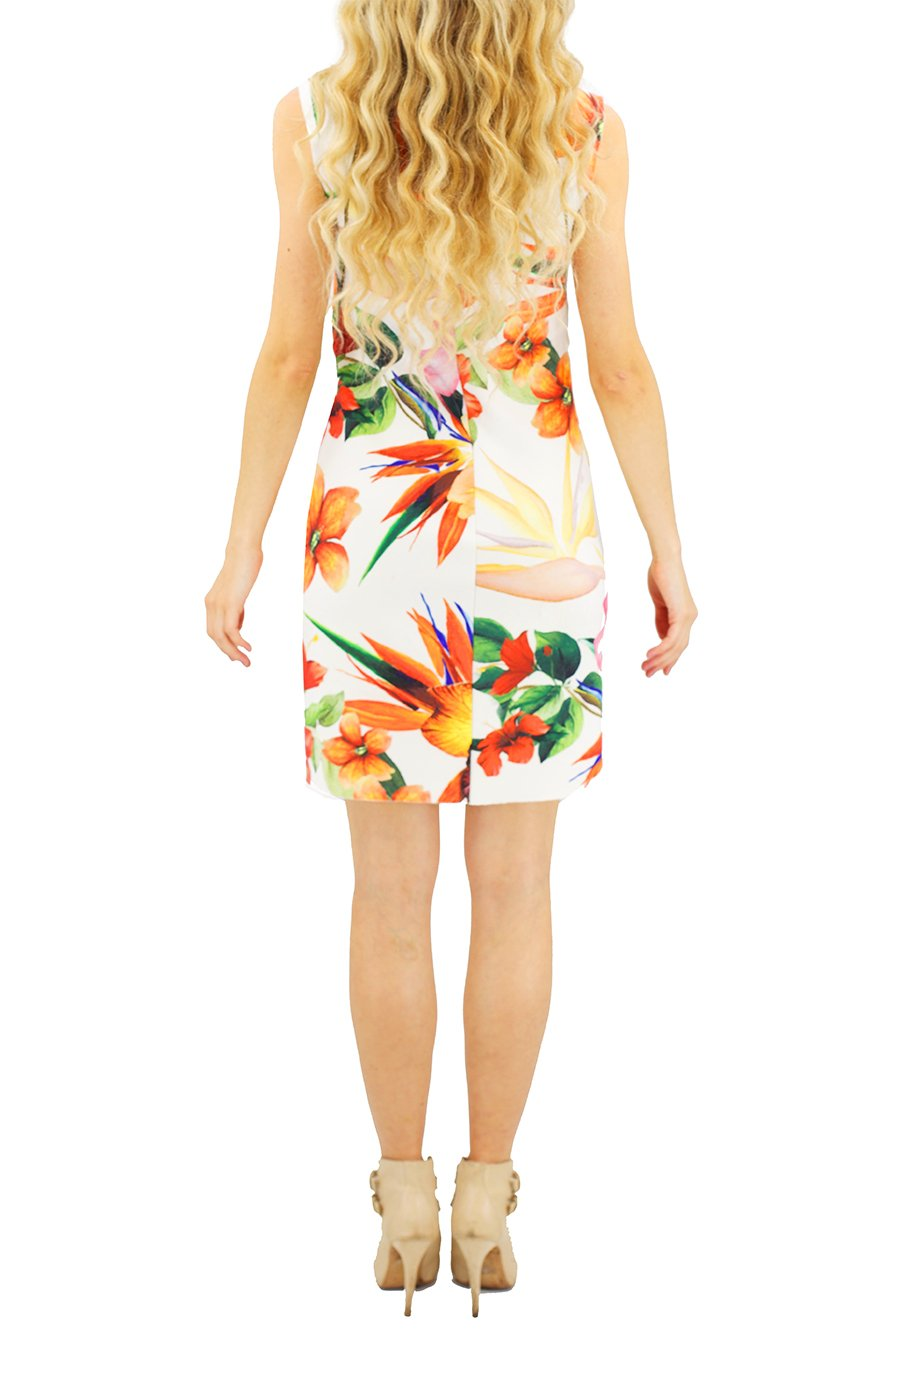 Osklen Summer Floral Stretchy Dress